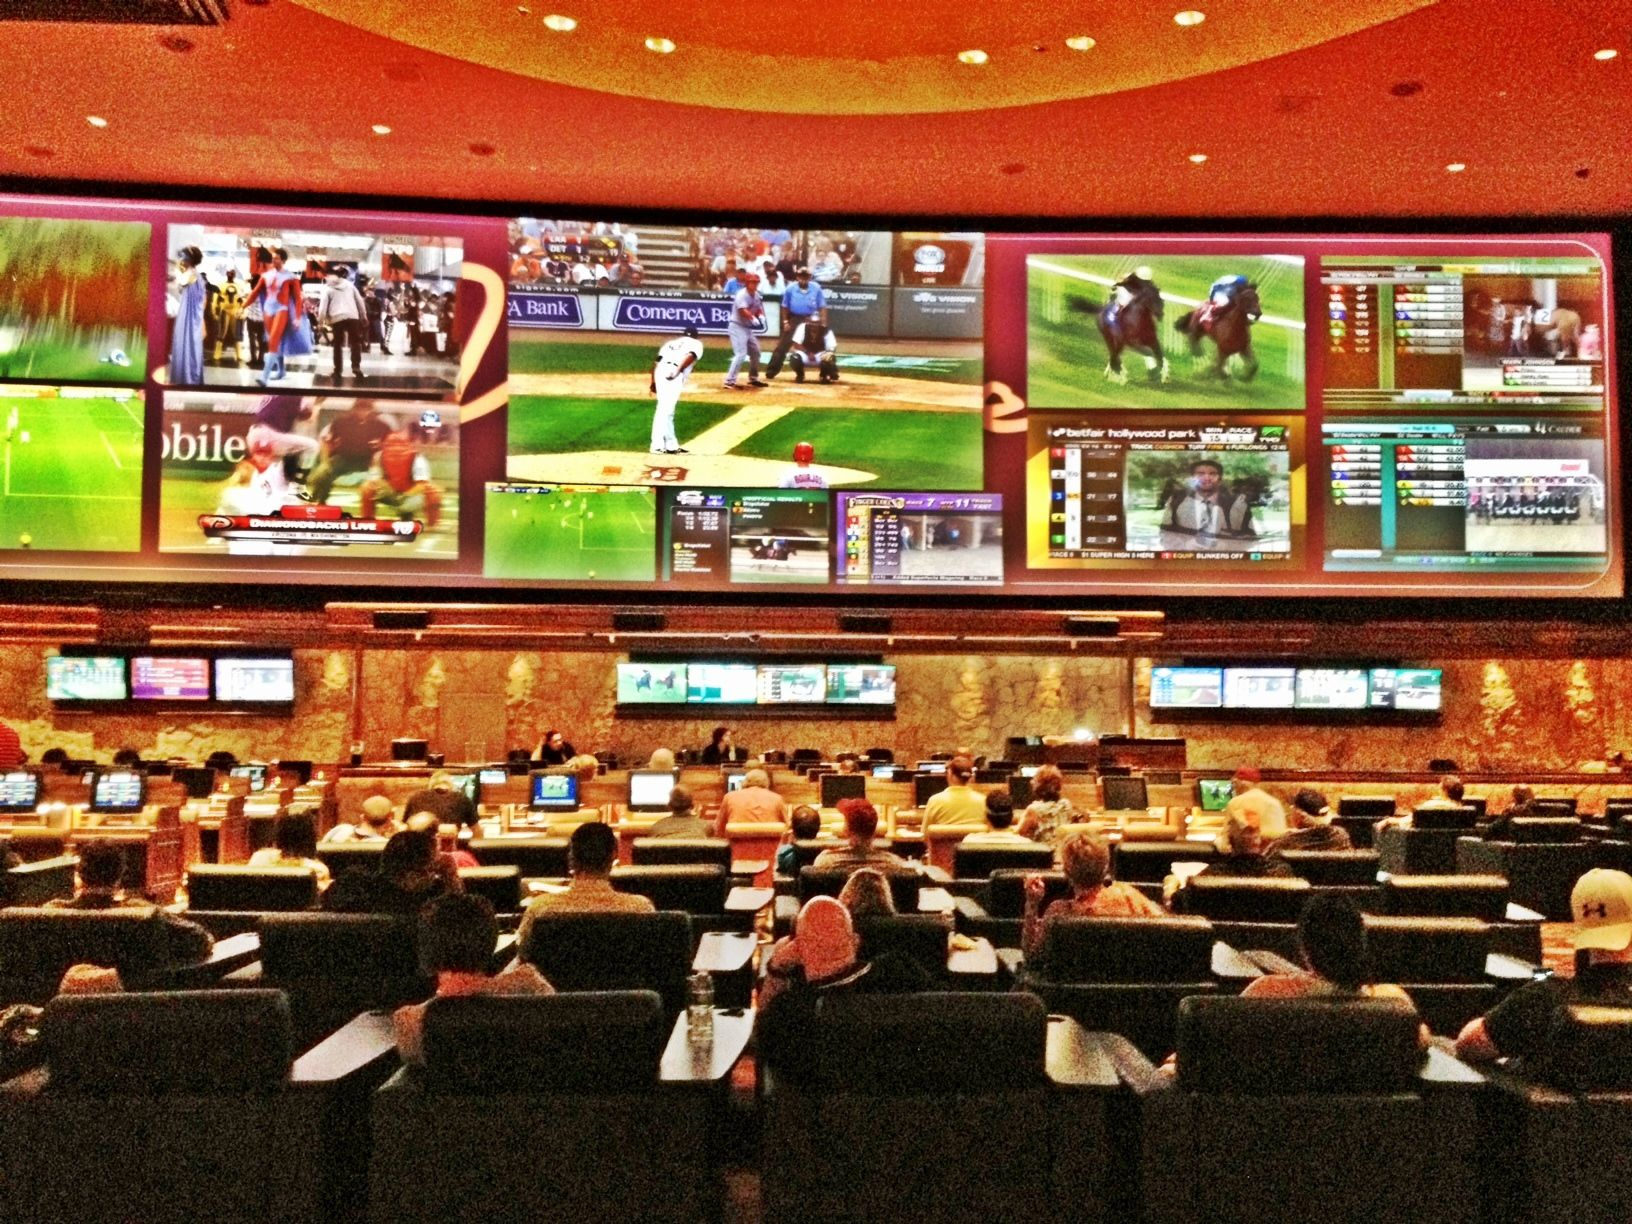 Mgm grand las vegas sports betting lines davidowitz betting thoroughbreds